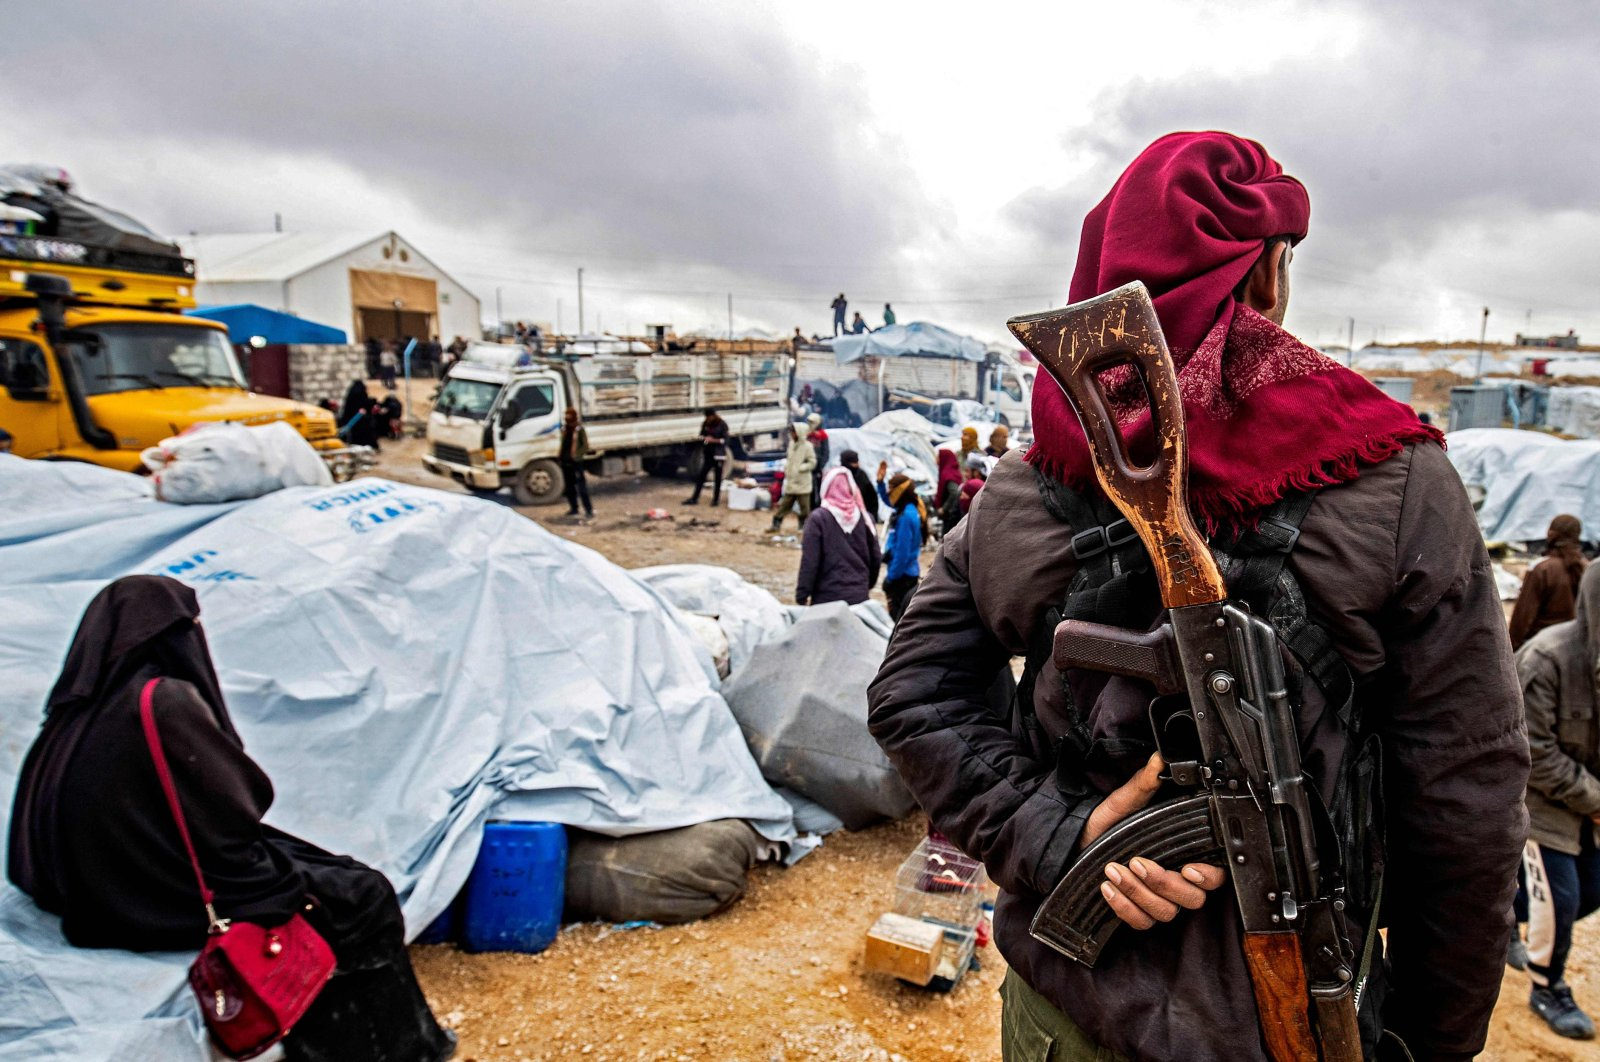 A YPG terrorist watches as families load their belongings onto trucks before leaving the YPG-run al-Hol camp holding relatives of Daesh terrorist group fighters, in the Hassakeh governorate in northeastern Syria, Nov. 16, 2020. (Photo by Delil Souleiman/AFP)